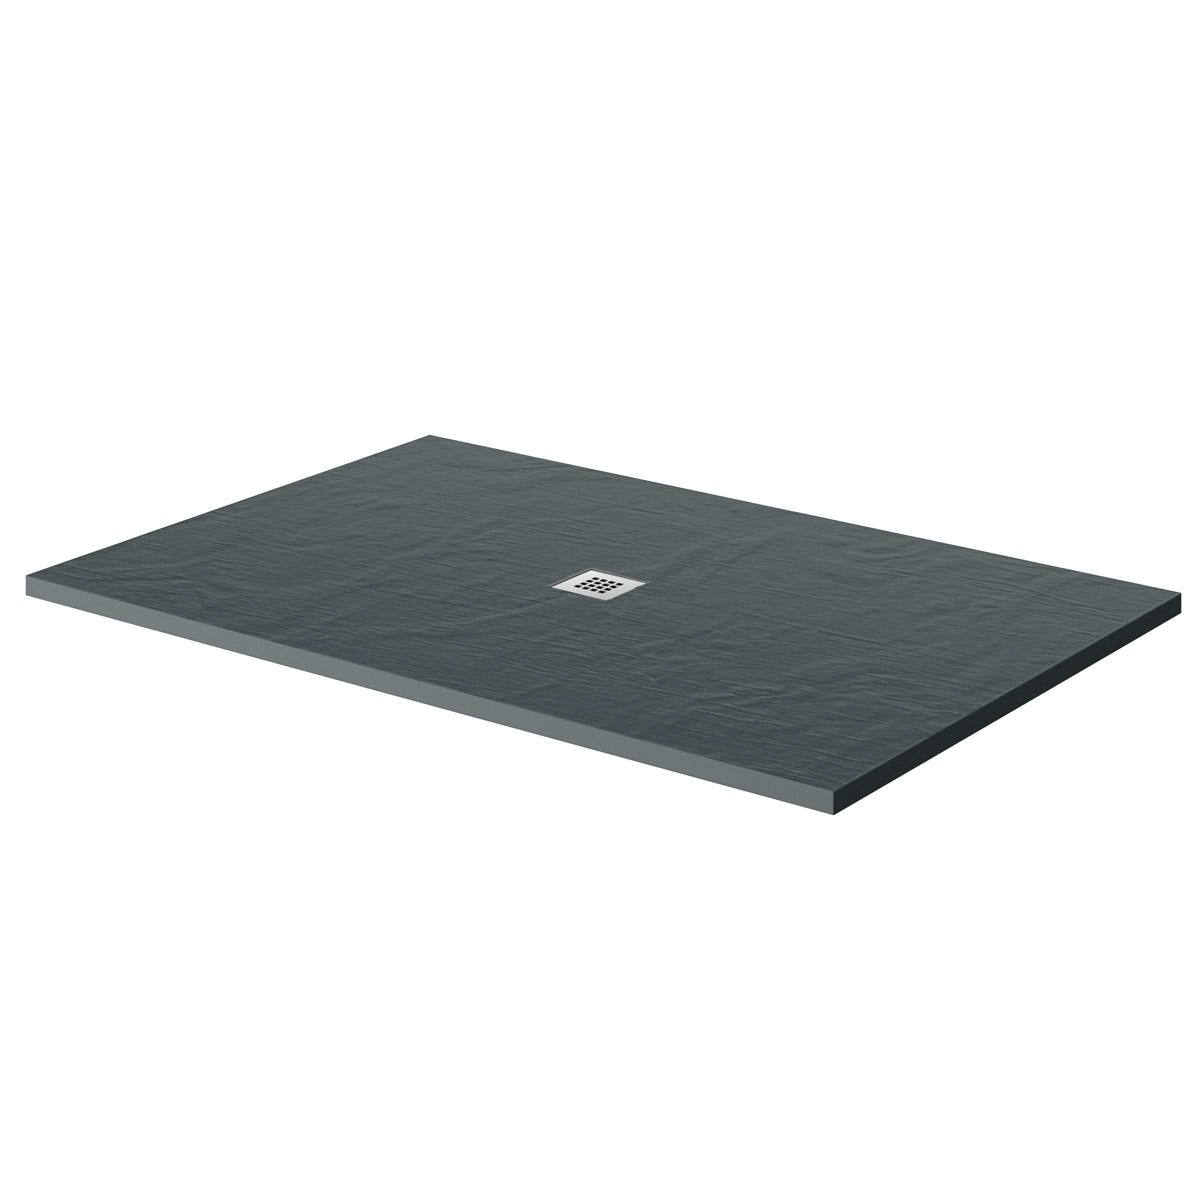 Mode grey slate effect rectangle stone shower tray 1200 x 800